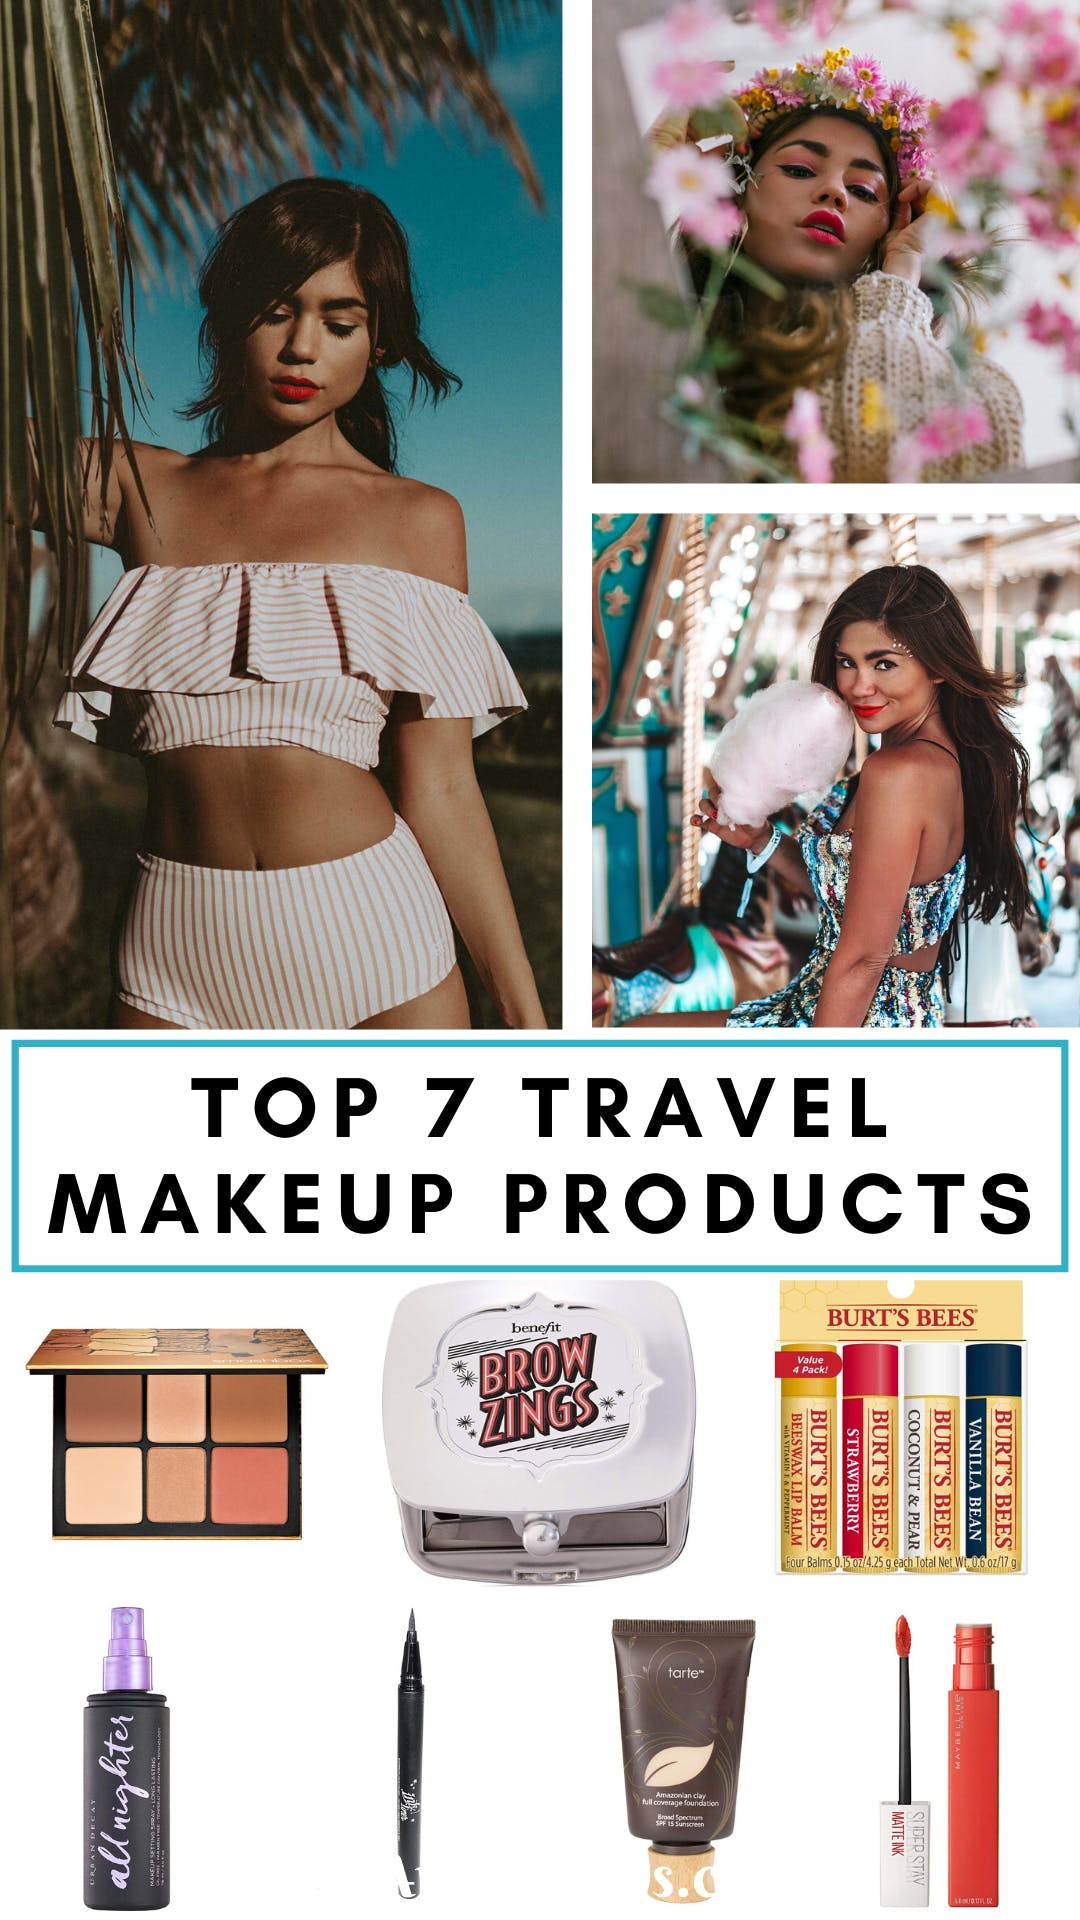 These are the 7 best makeup products I have found for travel. I look for products that are waterproof, long-lasting, reliable products that are easy to use and worth every cent! #beauty #makeup #beautyproducts | best makeup products | travel makeup essentials | travel makeup bag essentials | travel makeup kit | travel makeup best | travel makeup products | travel makeup list | travel makeup essential beauty products | whats in my travel makeup bag | must have makeup products